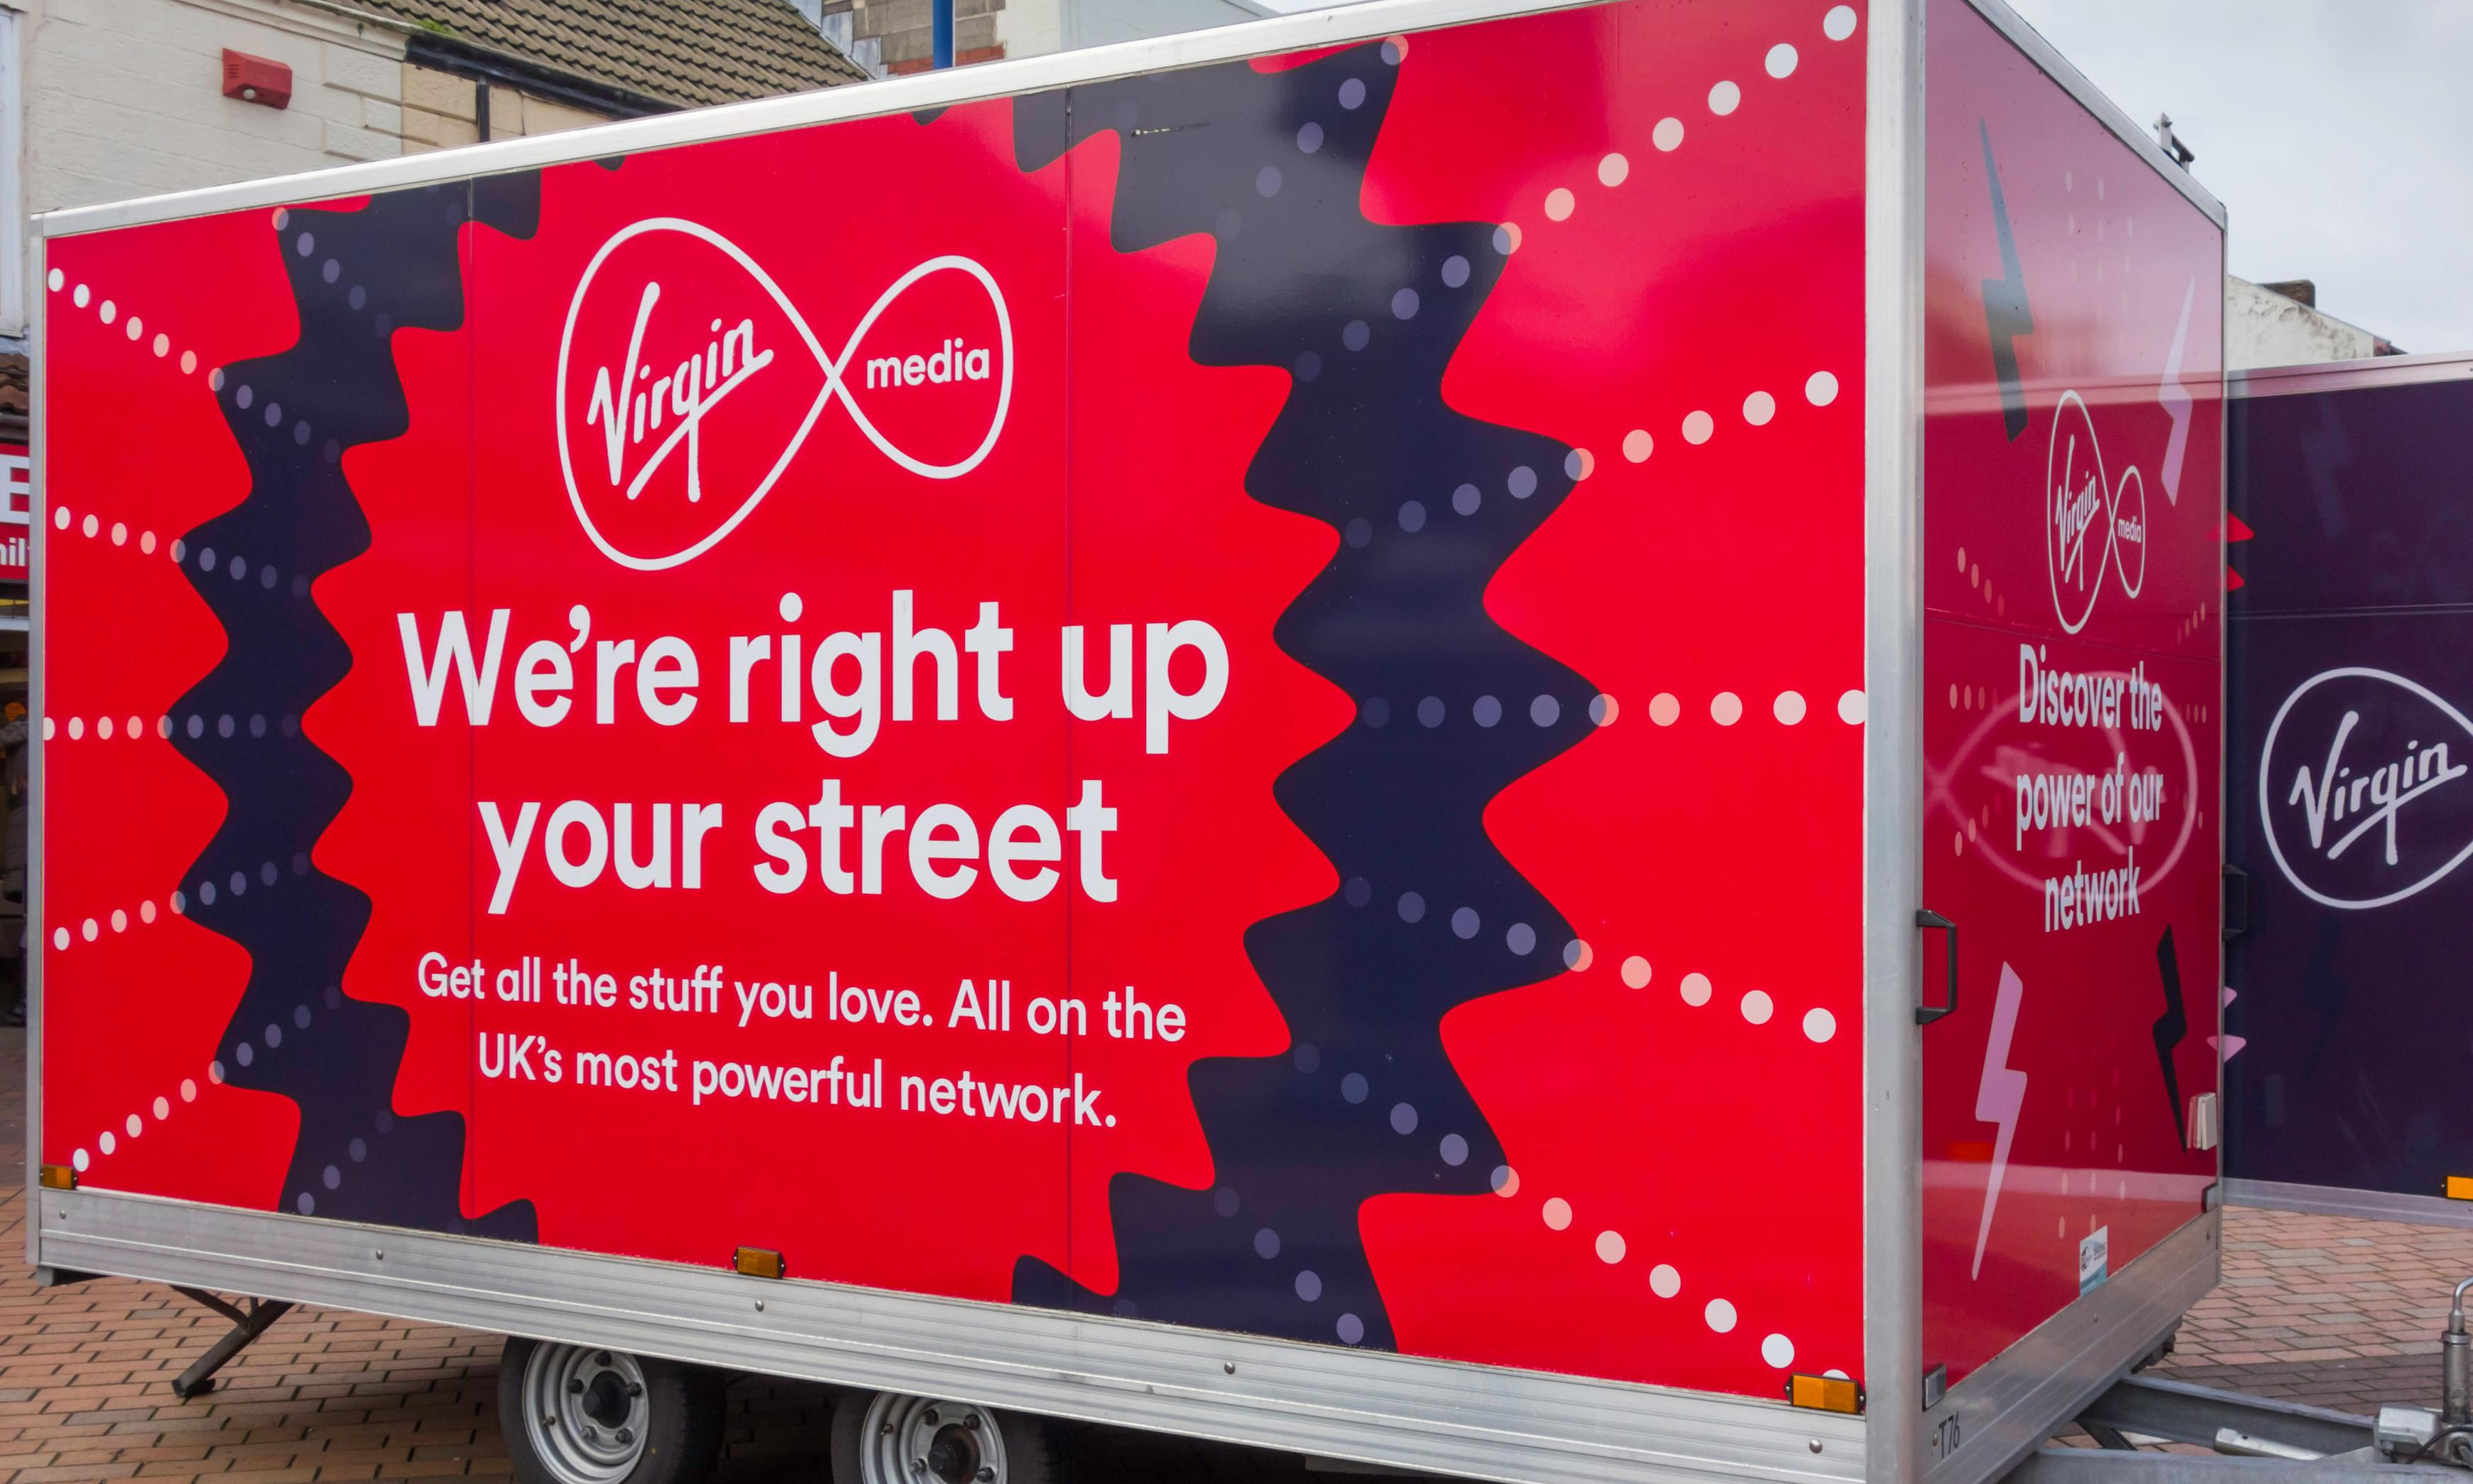 A Virgin Media salesman persuaded me to switch to a pricier deal